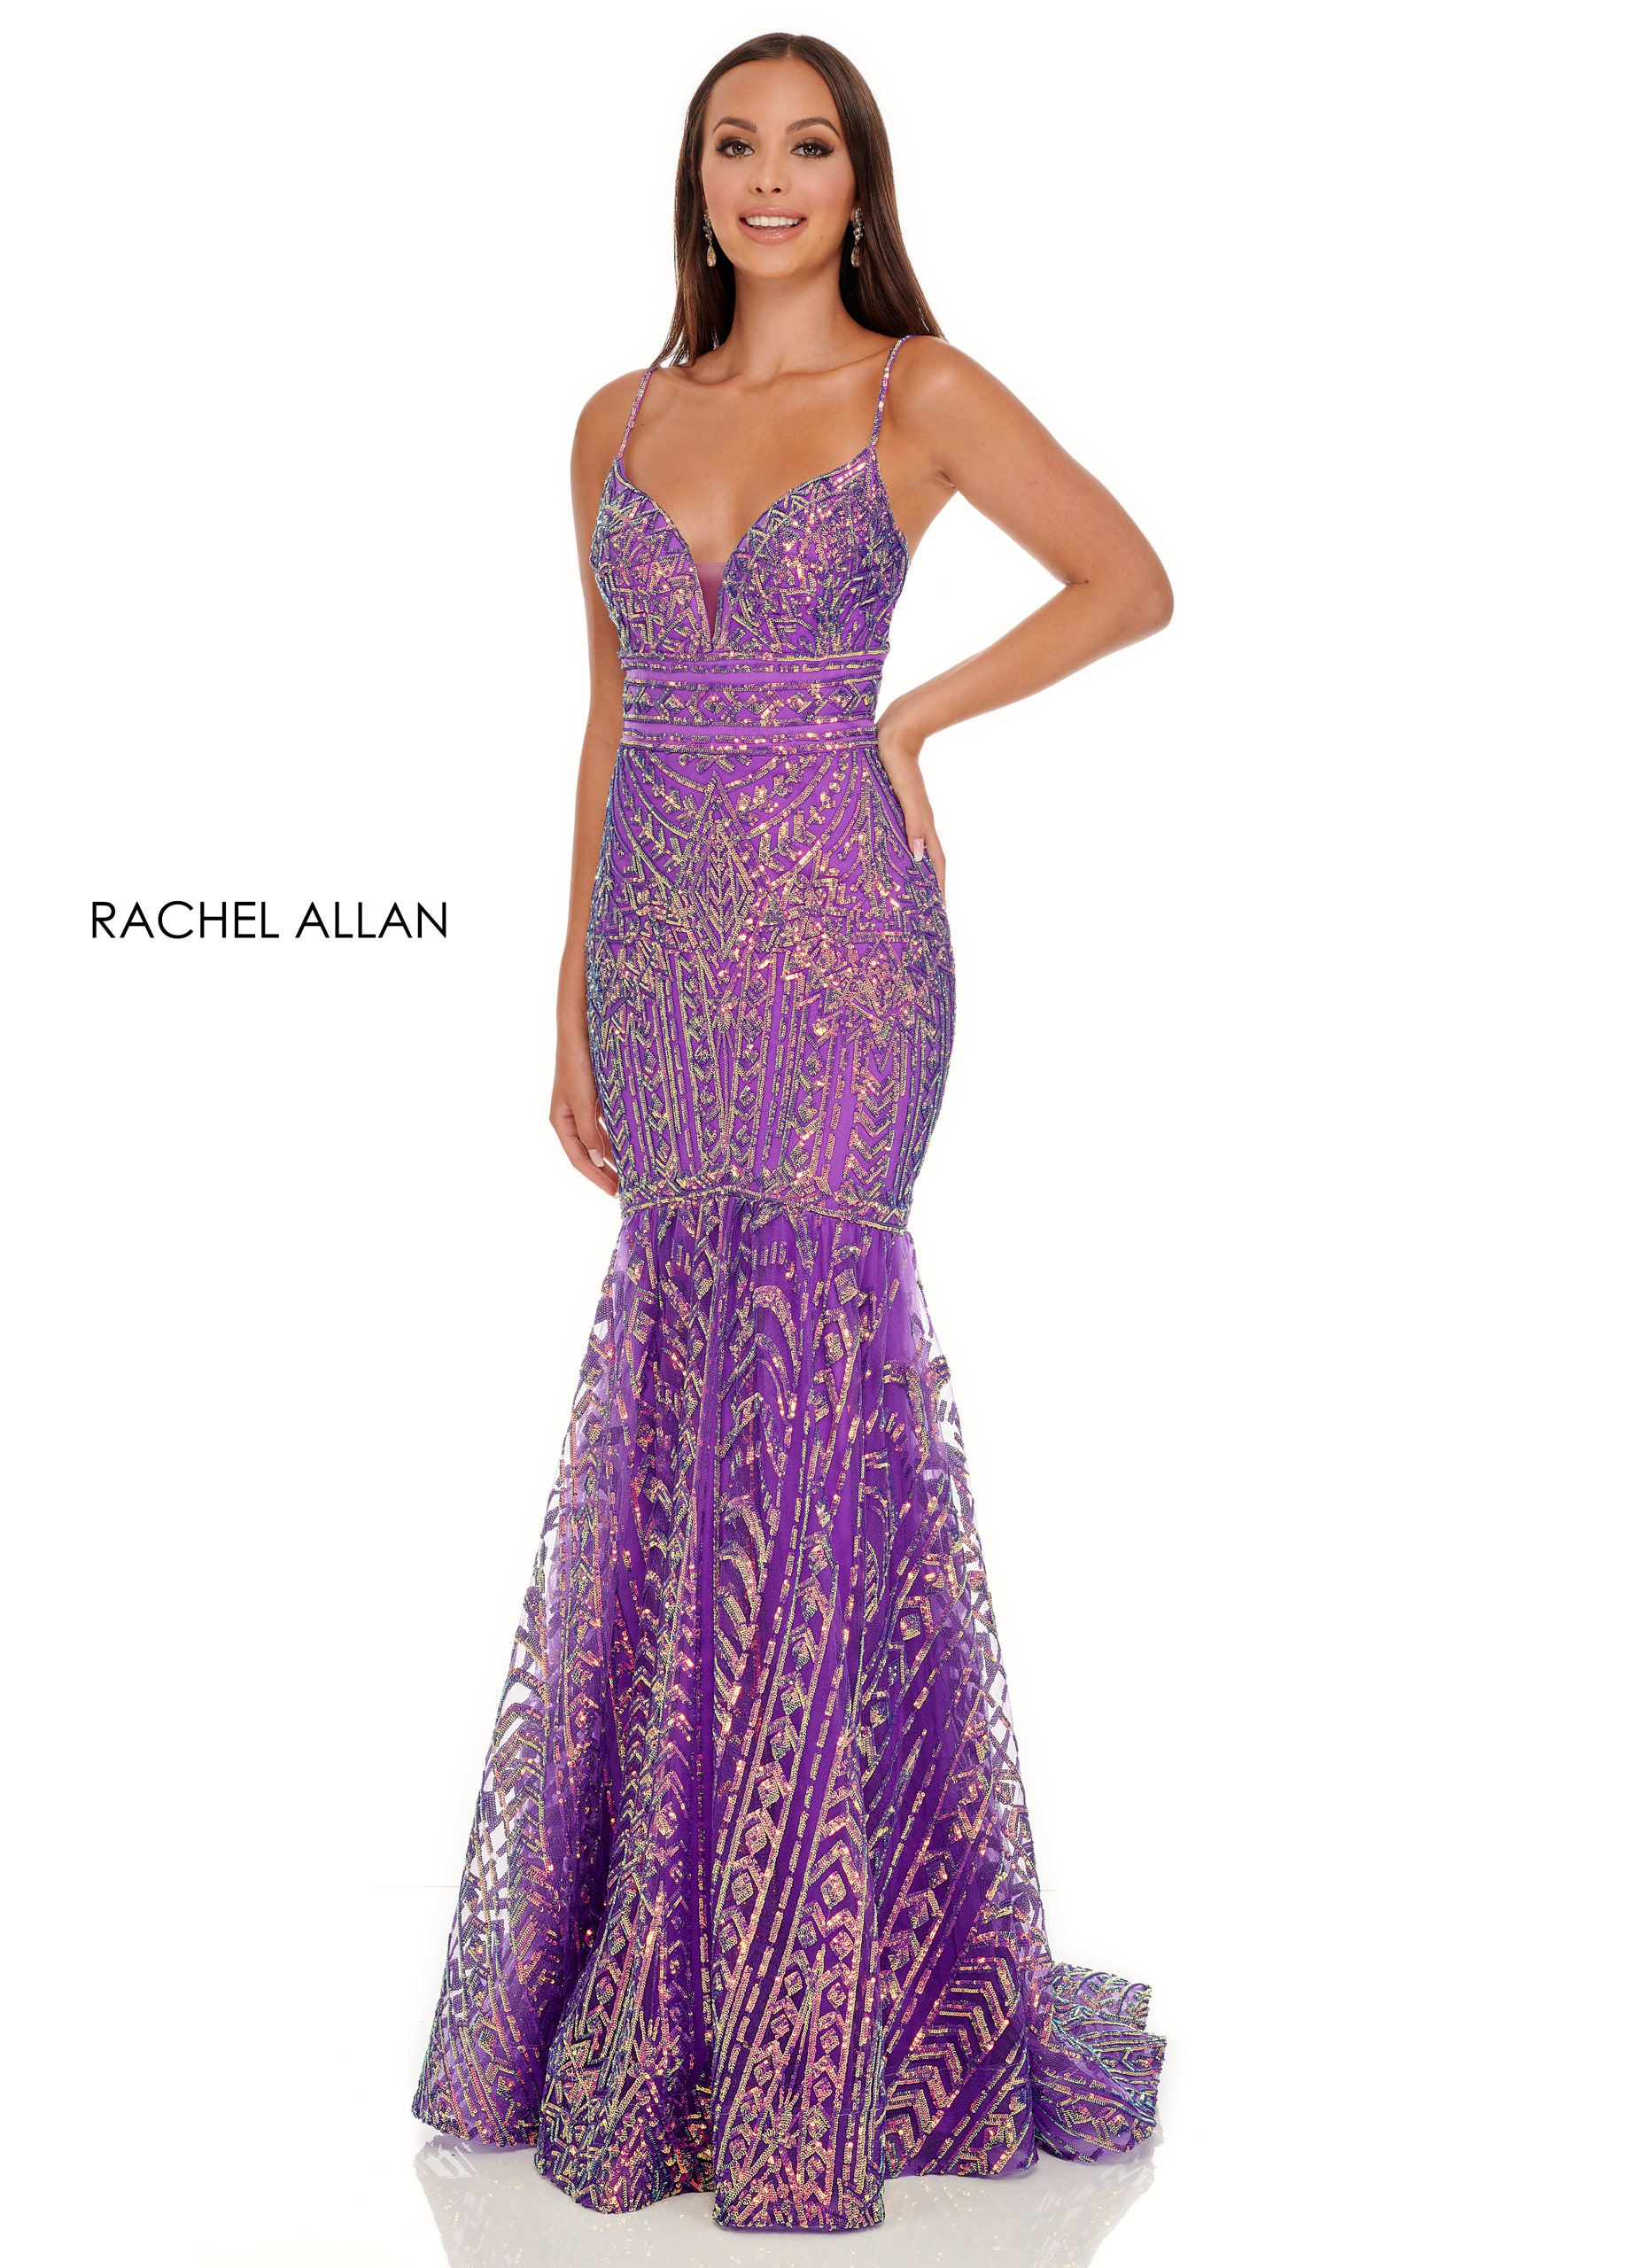 Sweetheart Fit & Flare Prom Dresses in Purple Color